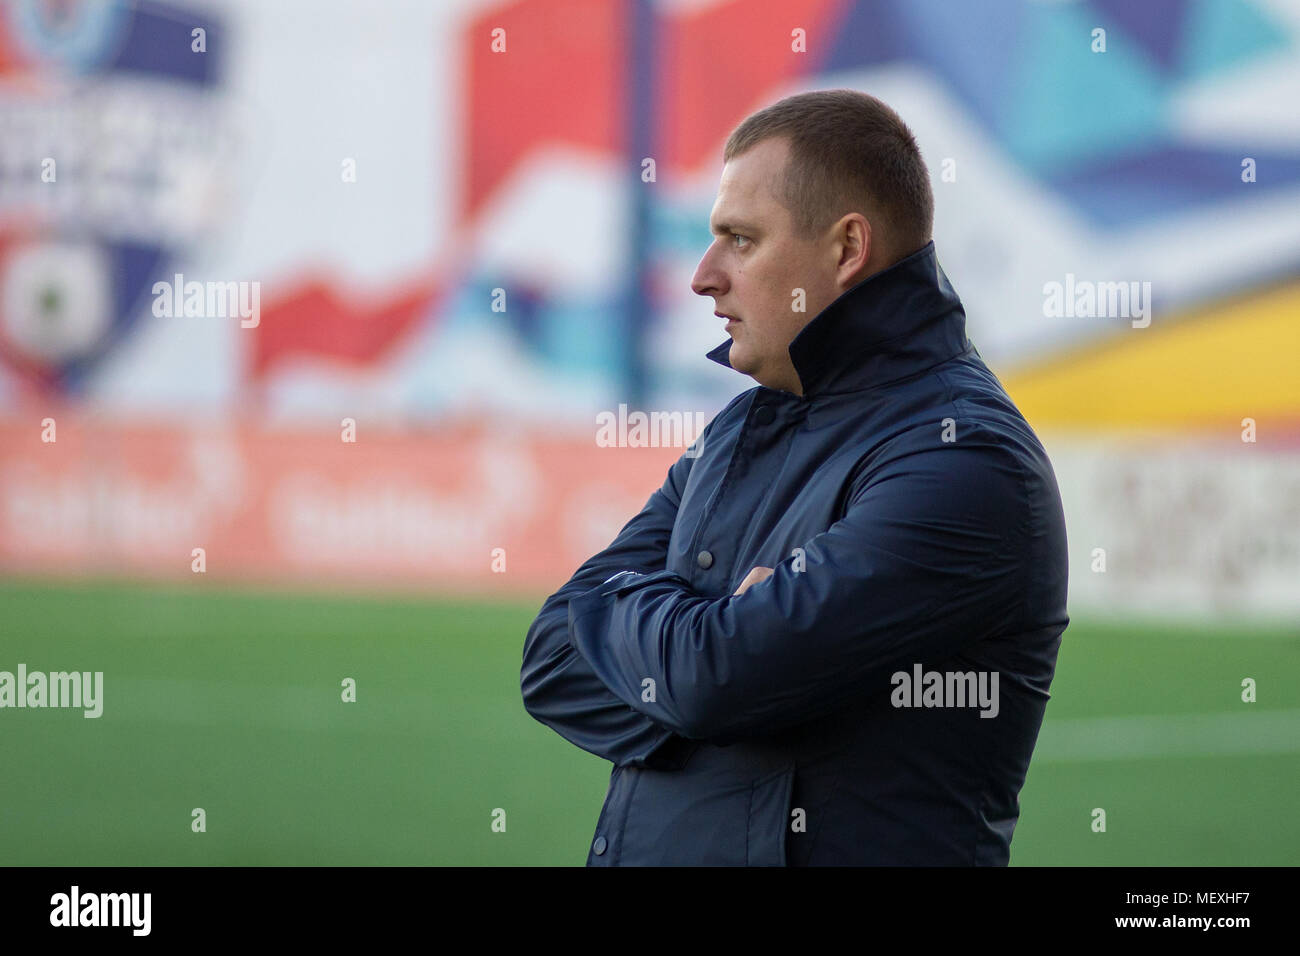 MINSK, BELARUS - APRIL 7, 2018: Vitaly Zhukovsky, head coach of FC Isloch looks during the Belarusian Premier League football match between FC Dynamo Minsk and FC Isloch at the FC Minsk Stadium. - Stock Image